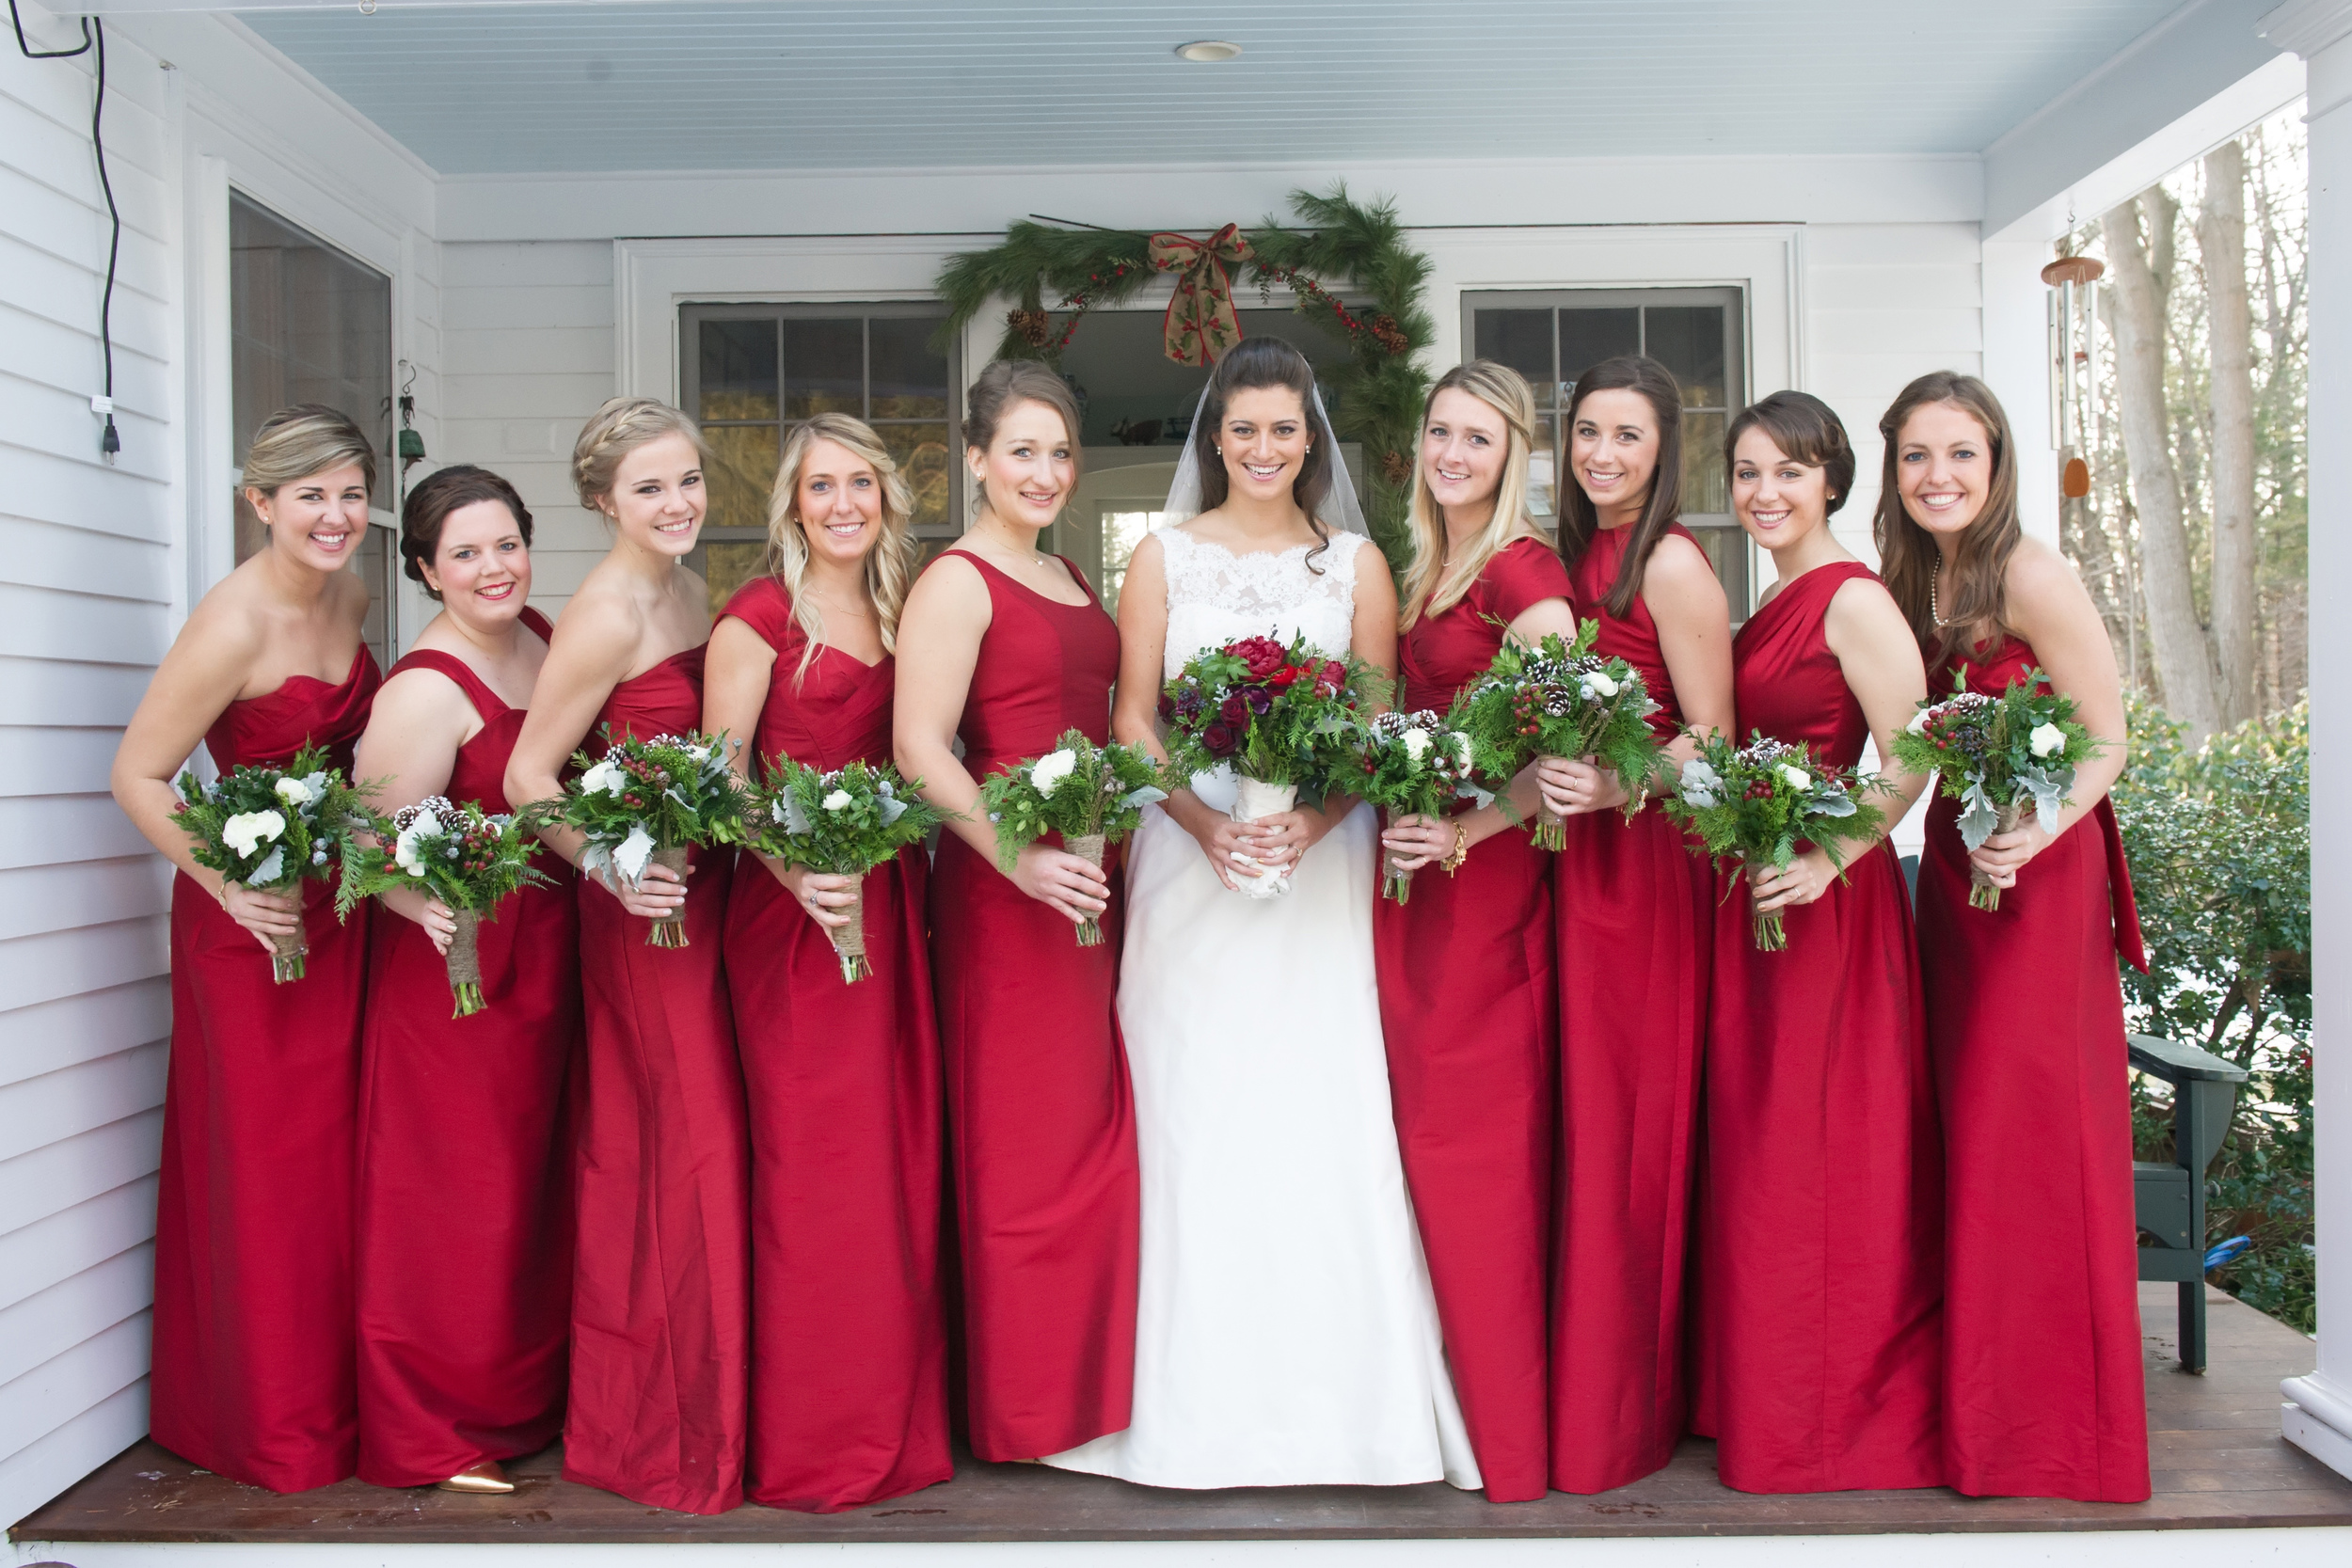 0215- Richey Wedding 12.28.13.jpg